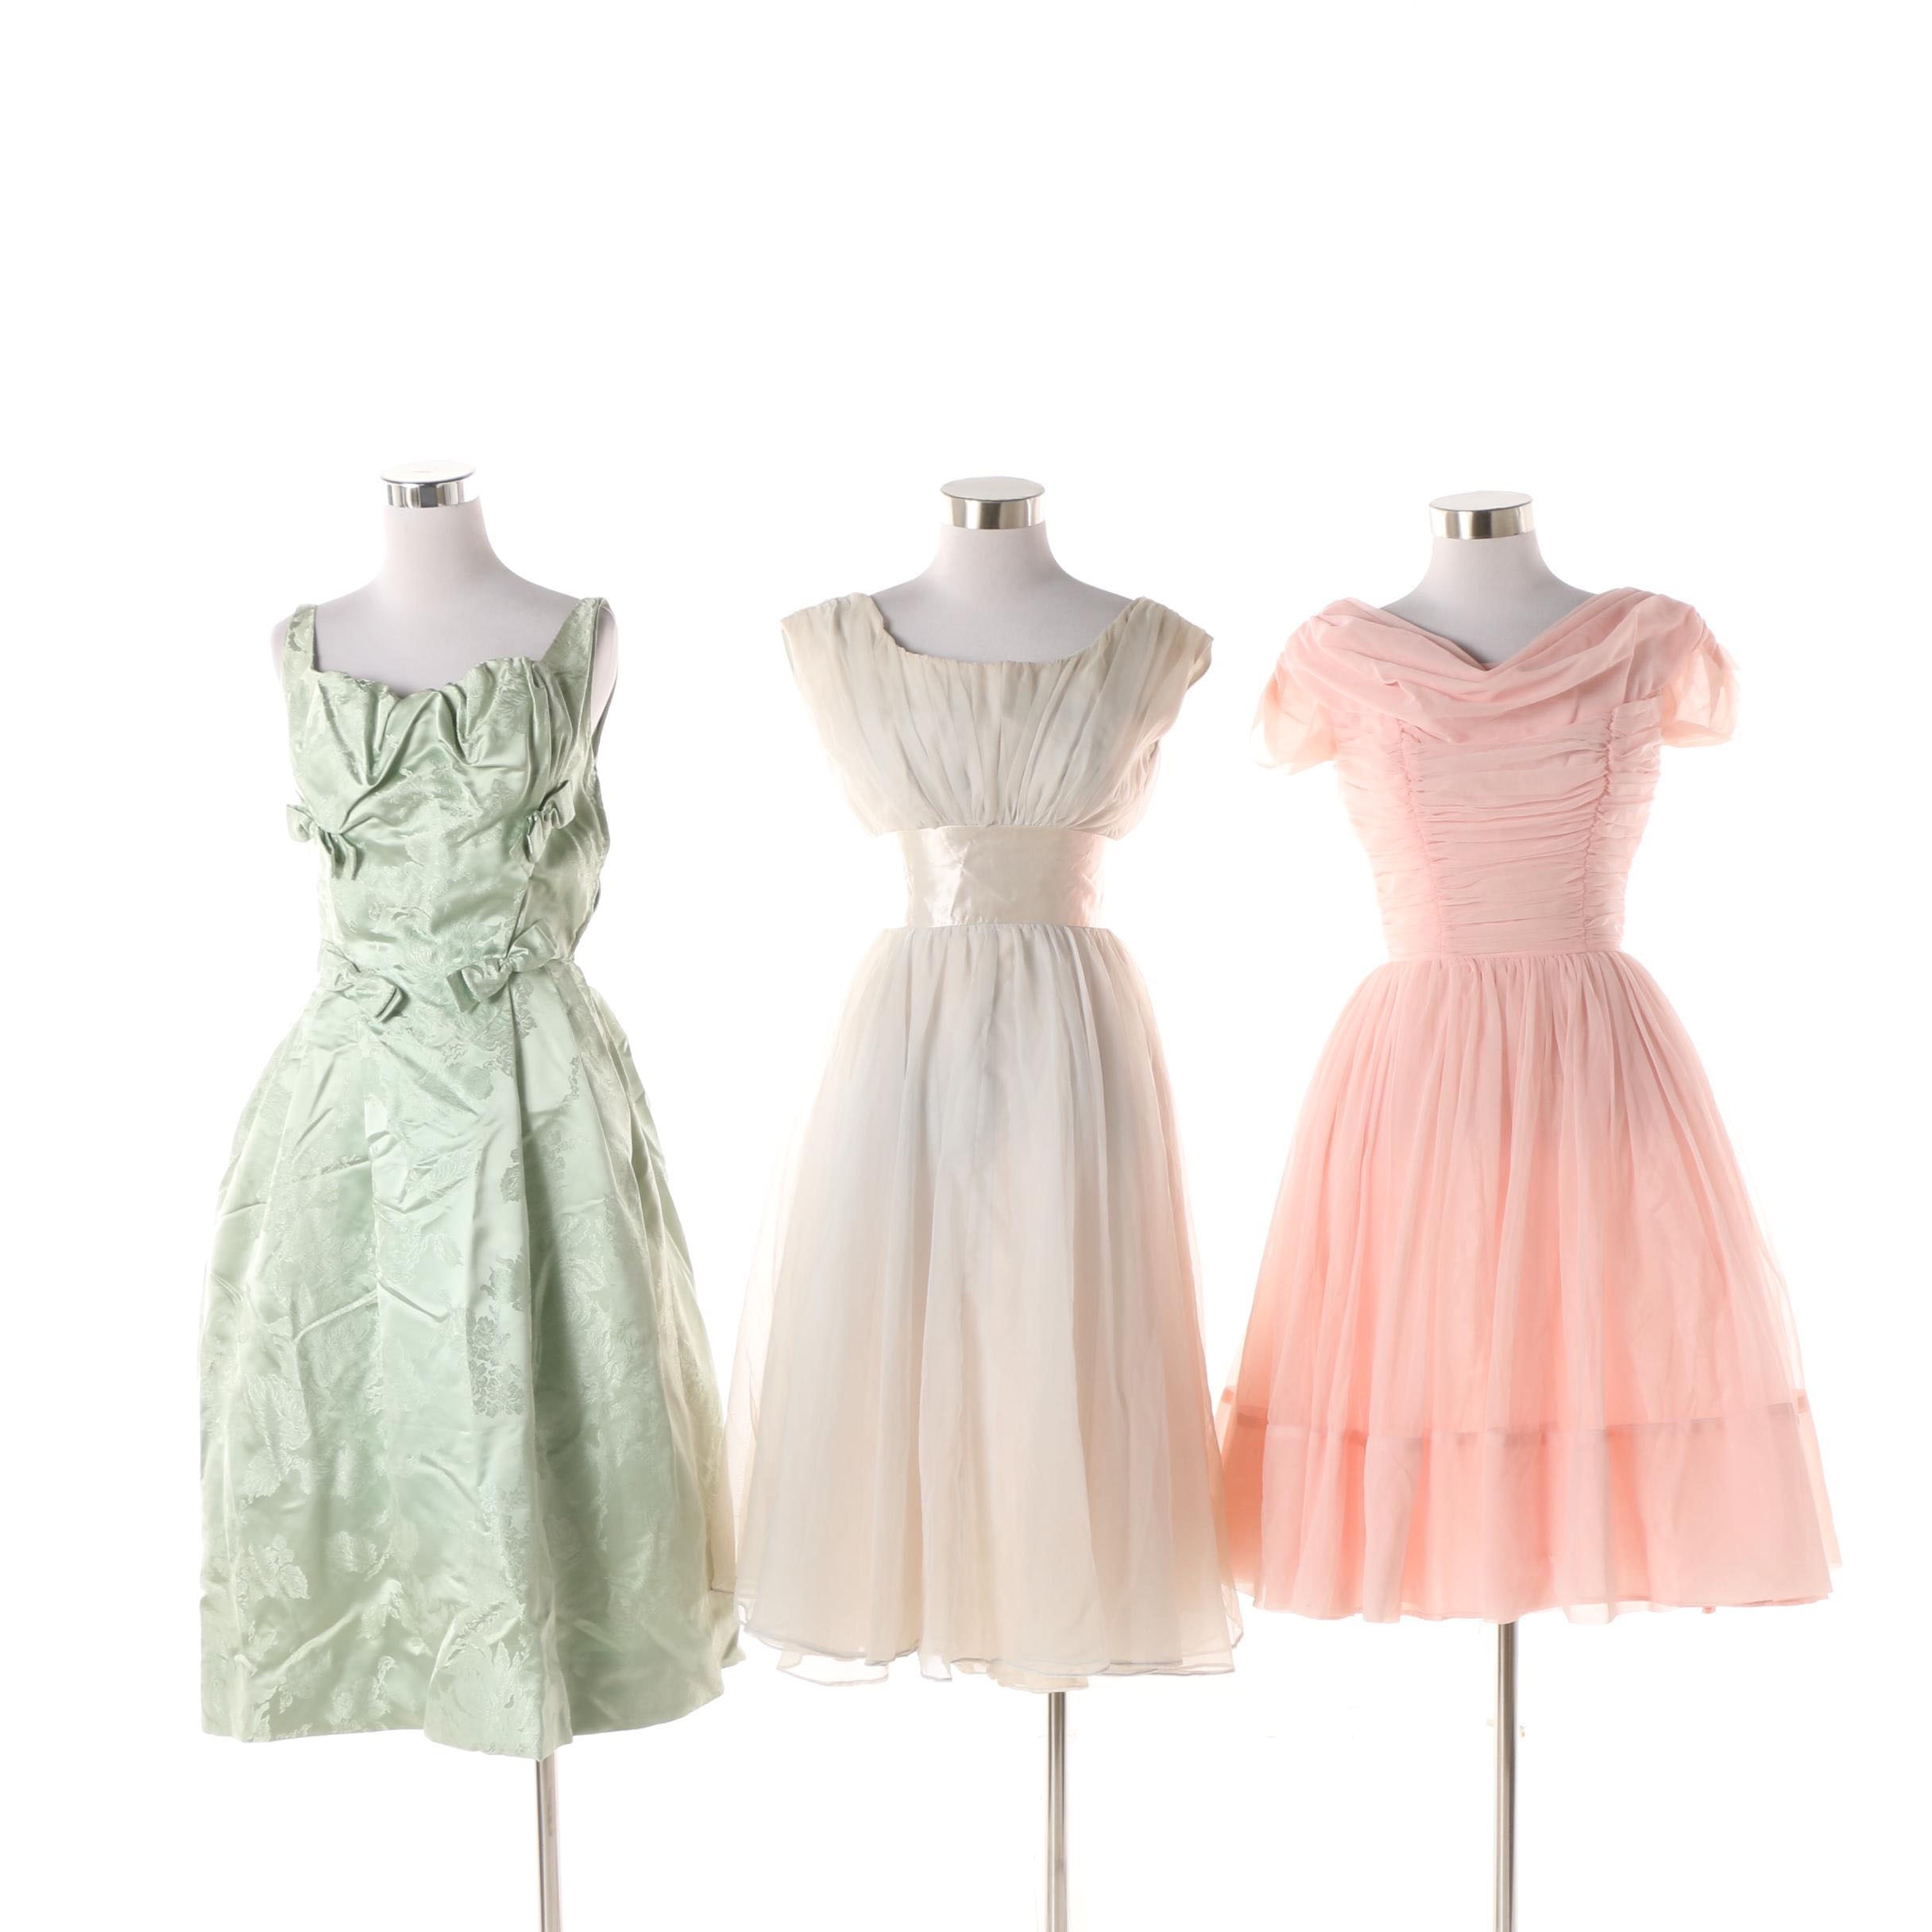 Circa 1950s Formal Dresses including Florence Lustiq Mint Green Damask